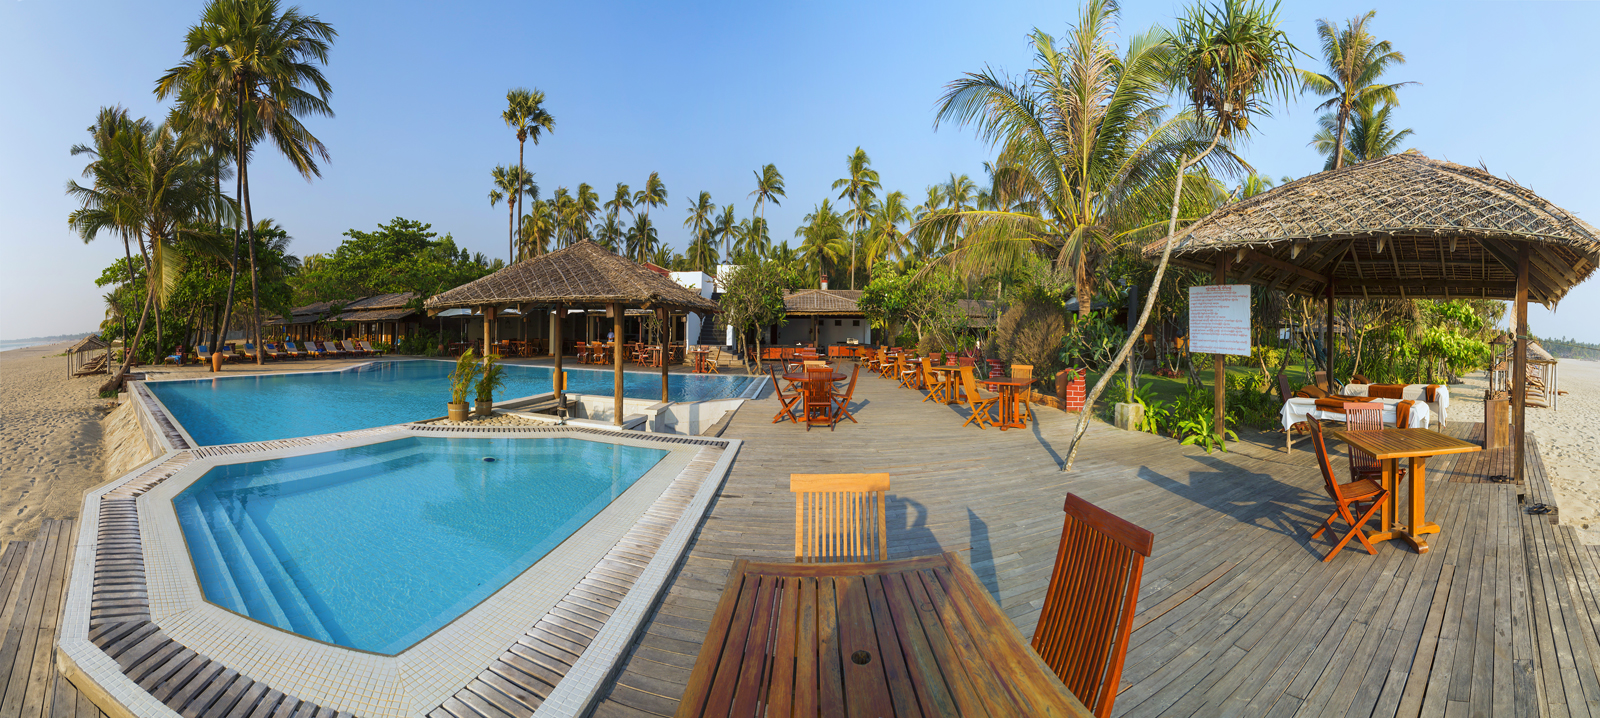 One of the luxury resorts in Ngwe Saung, west coast of Myanmar